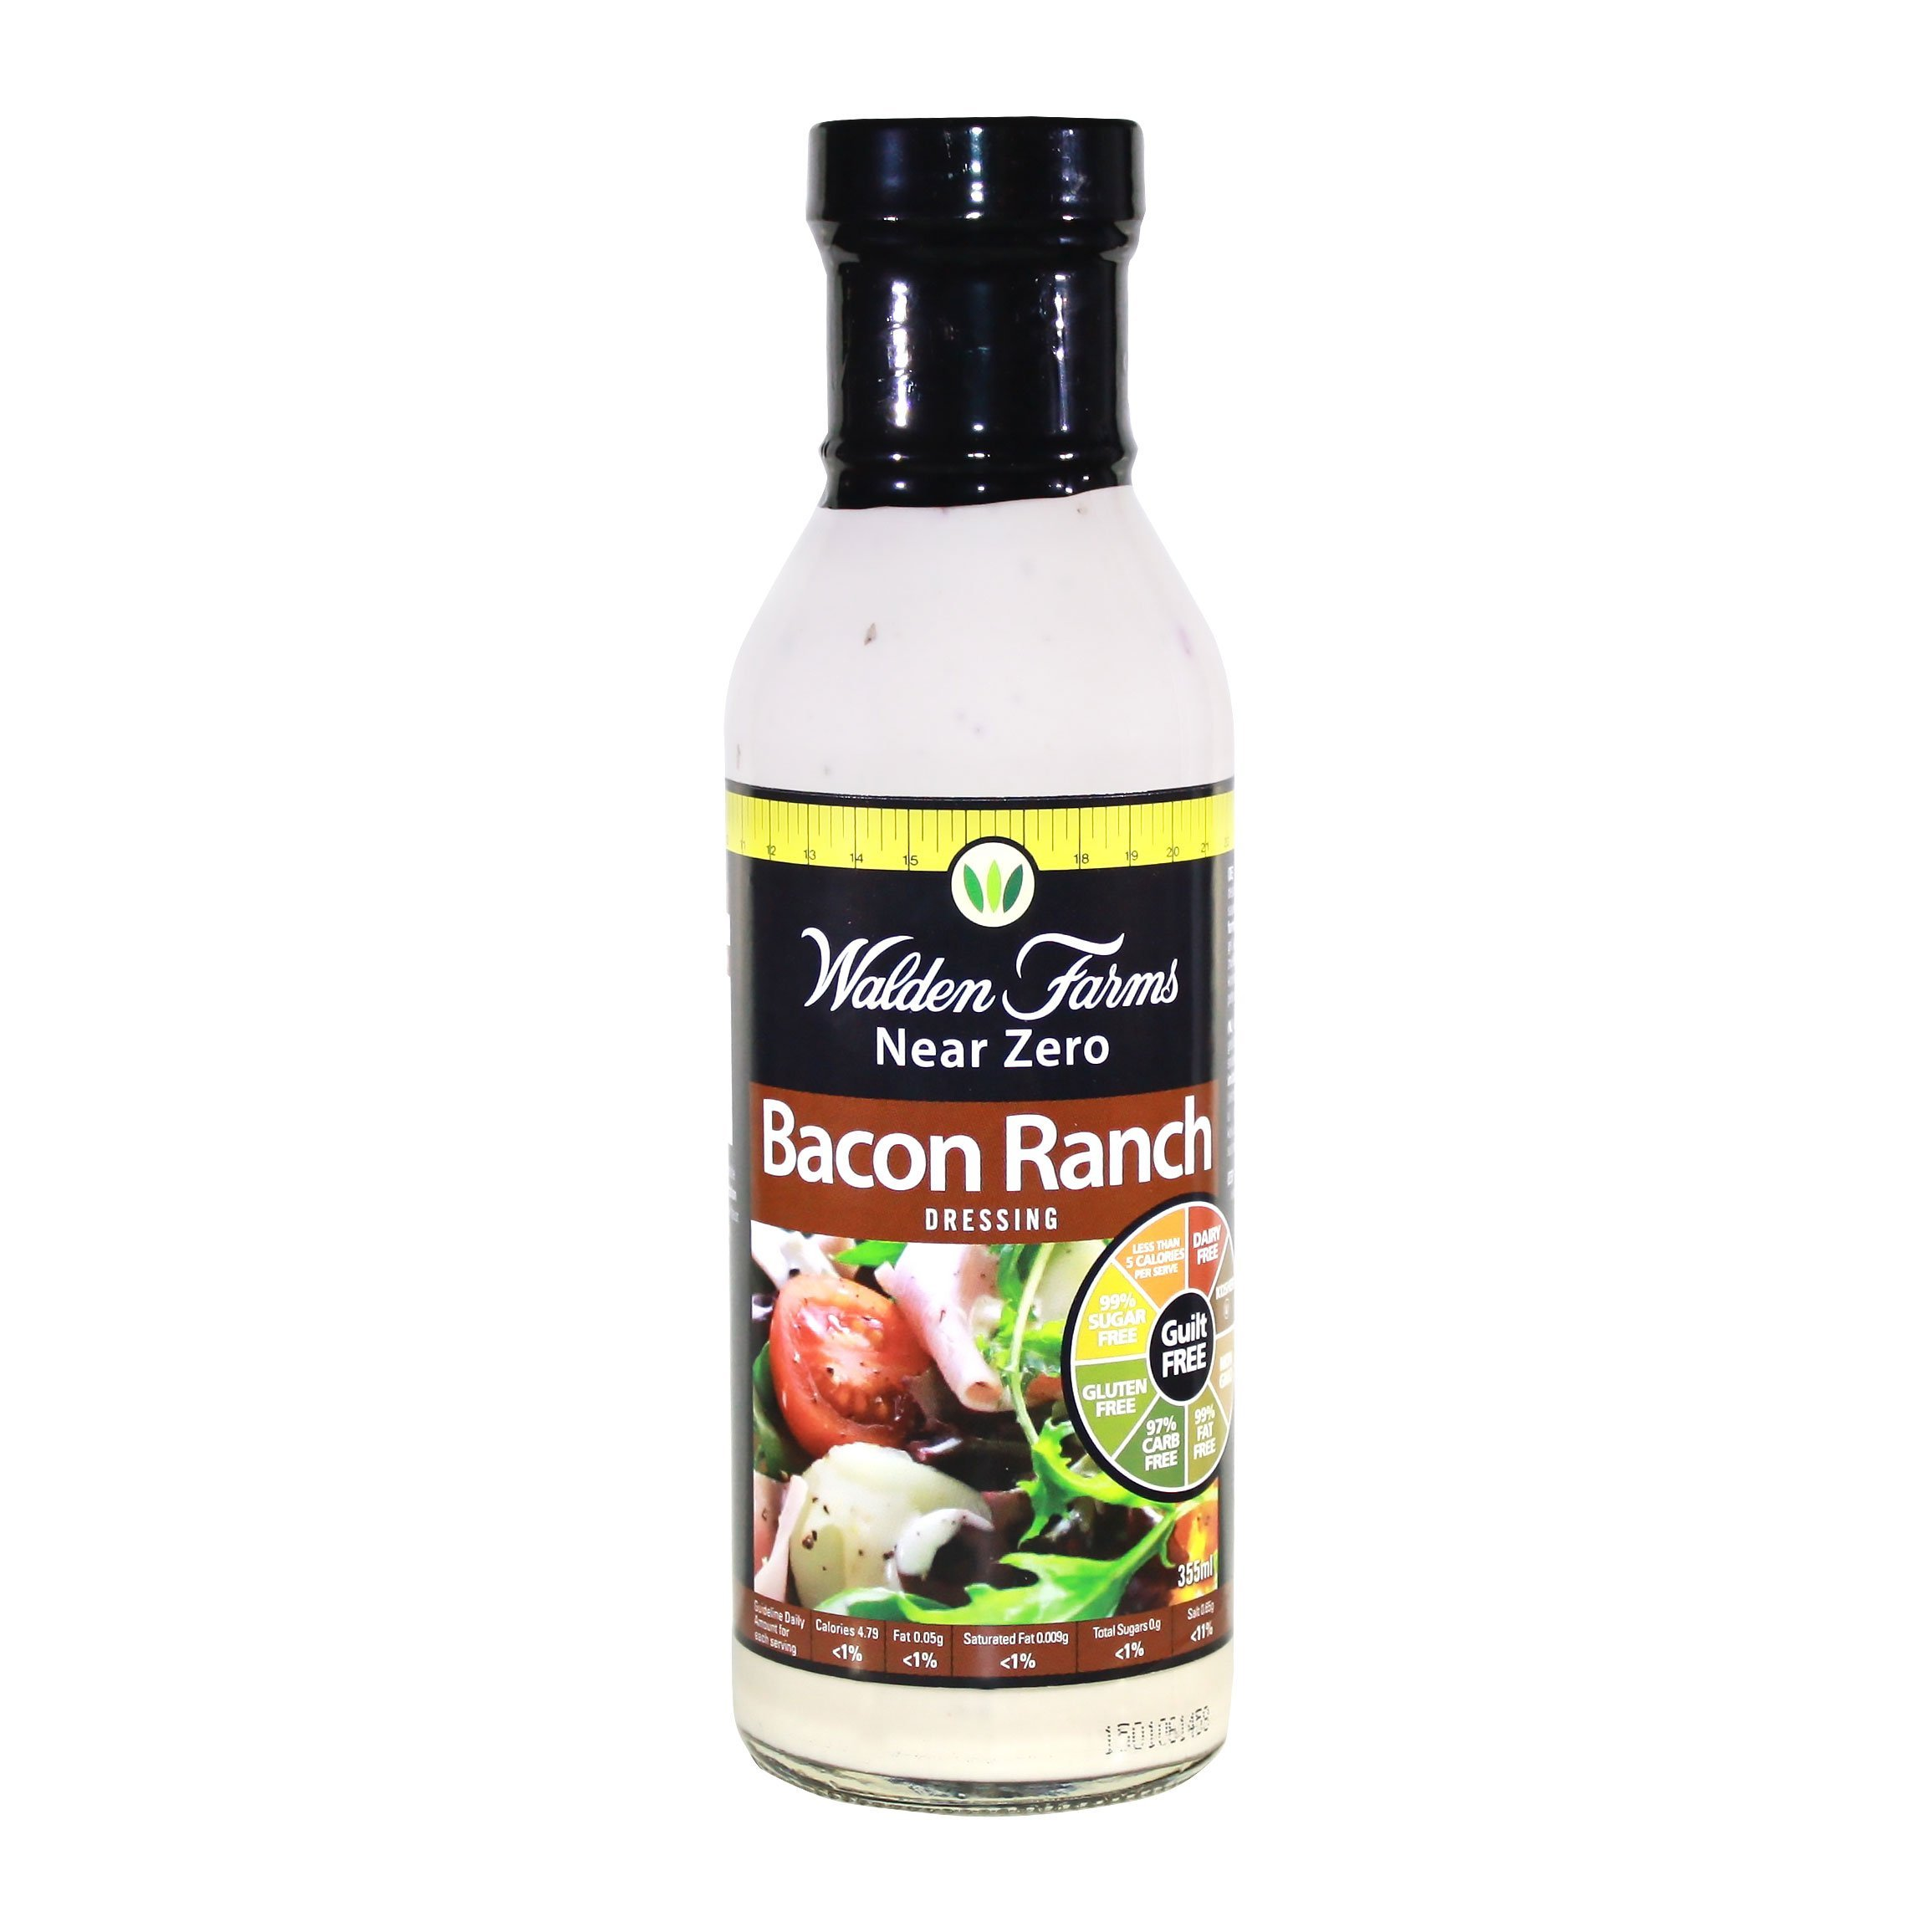 Walden Farms Bacon Ranch Dressing-12 oz 2 Pack